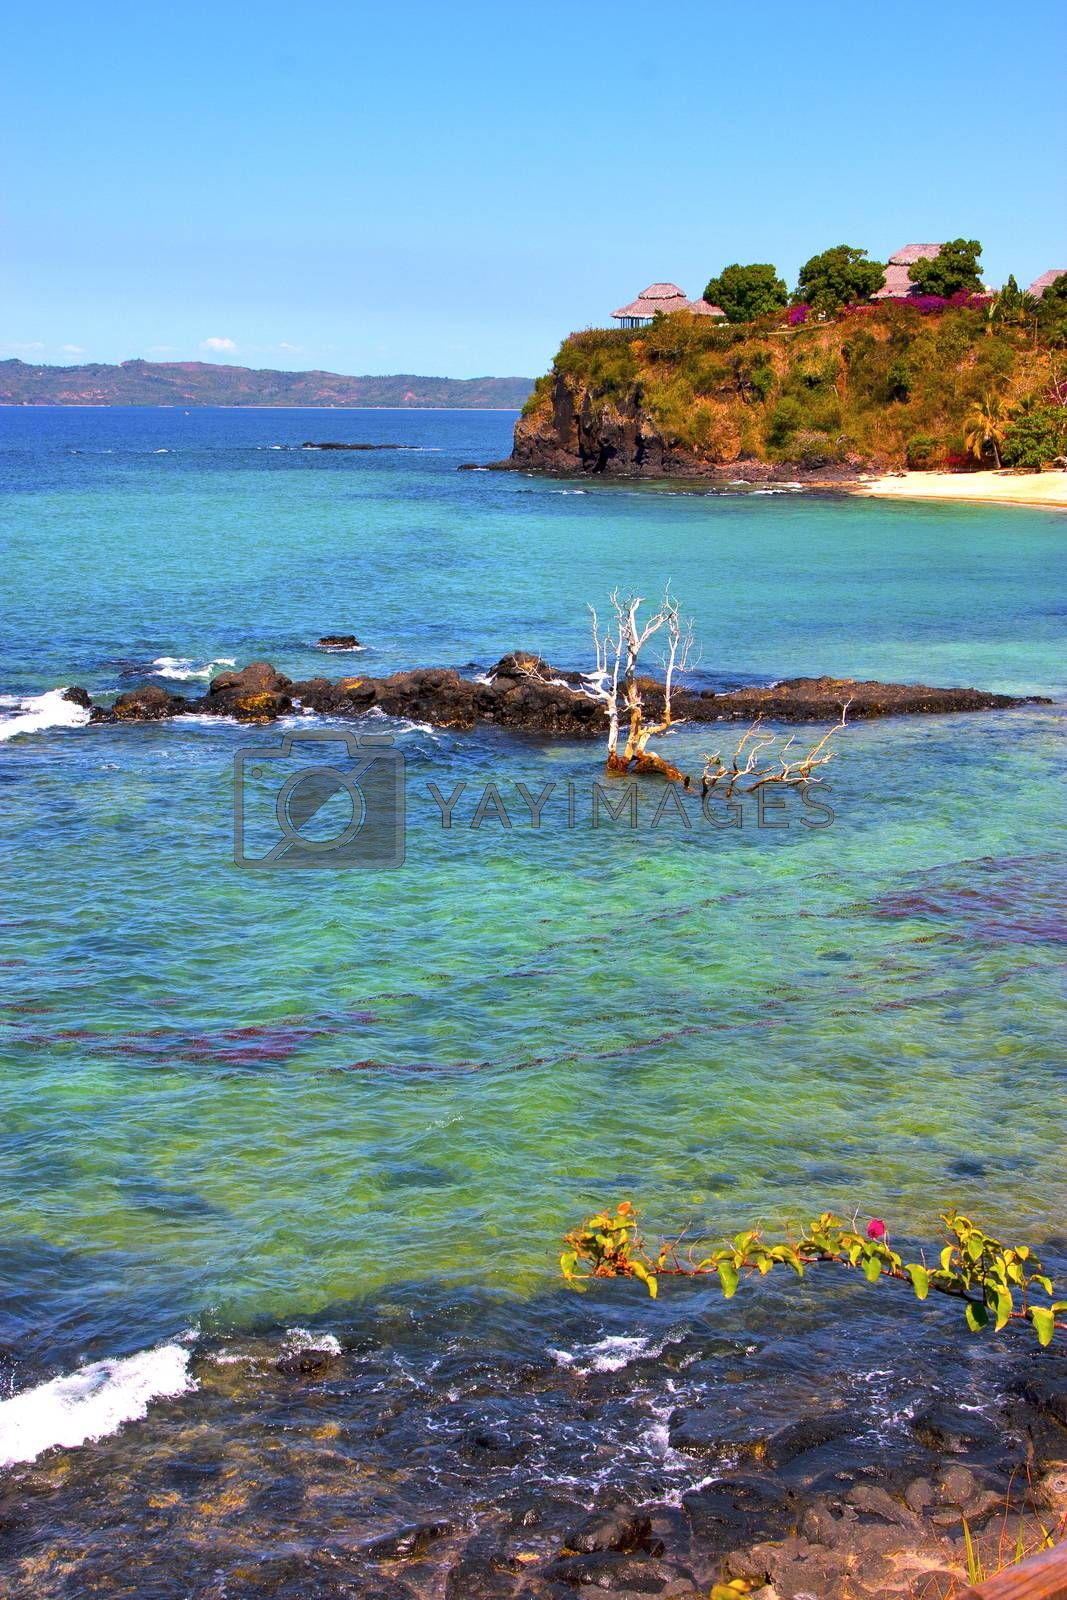 andilana beach seaweed in indian ocean madagascar   by lkpro